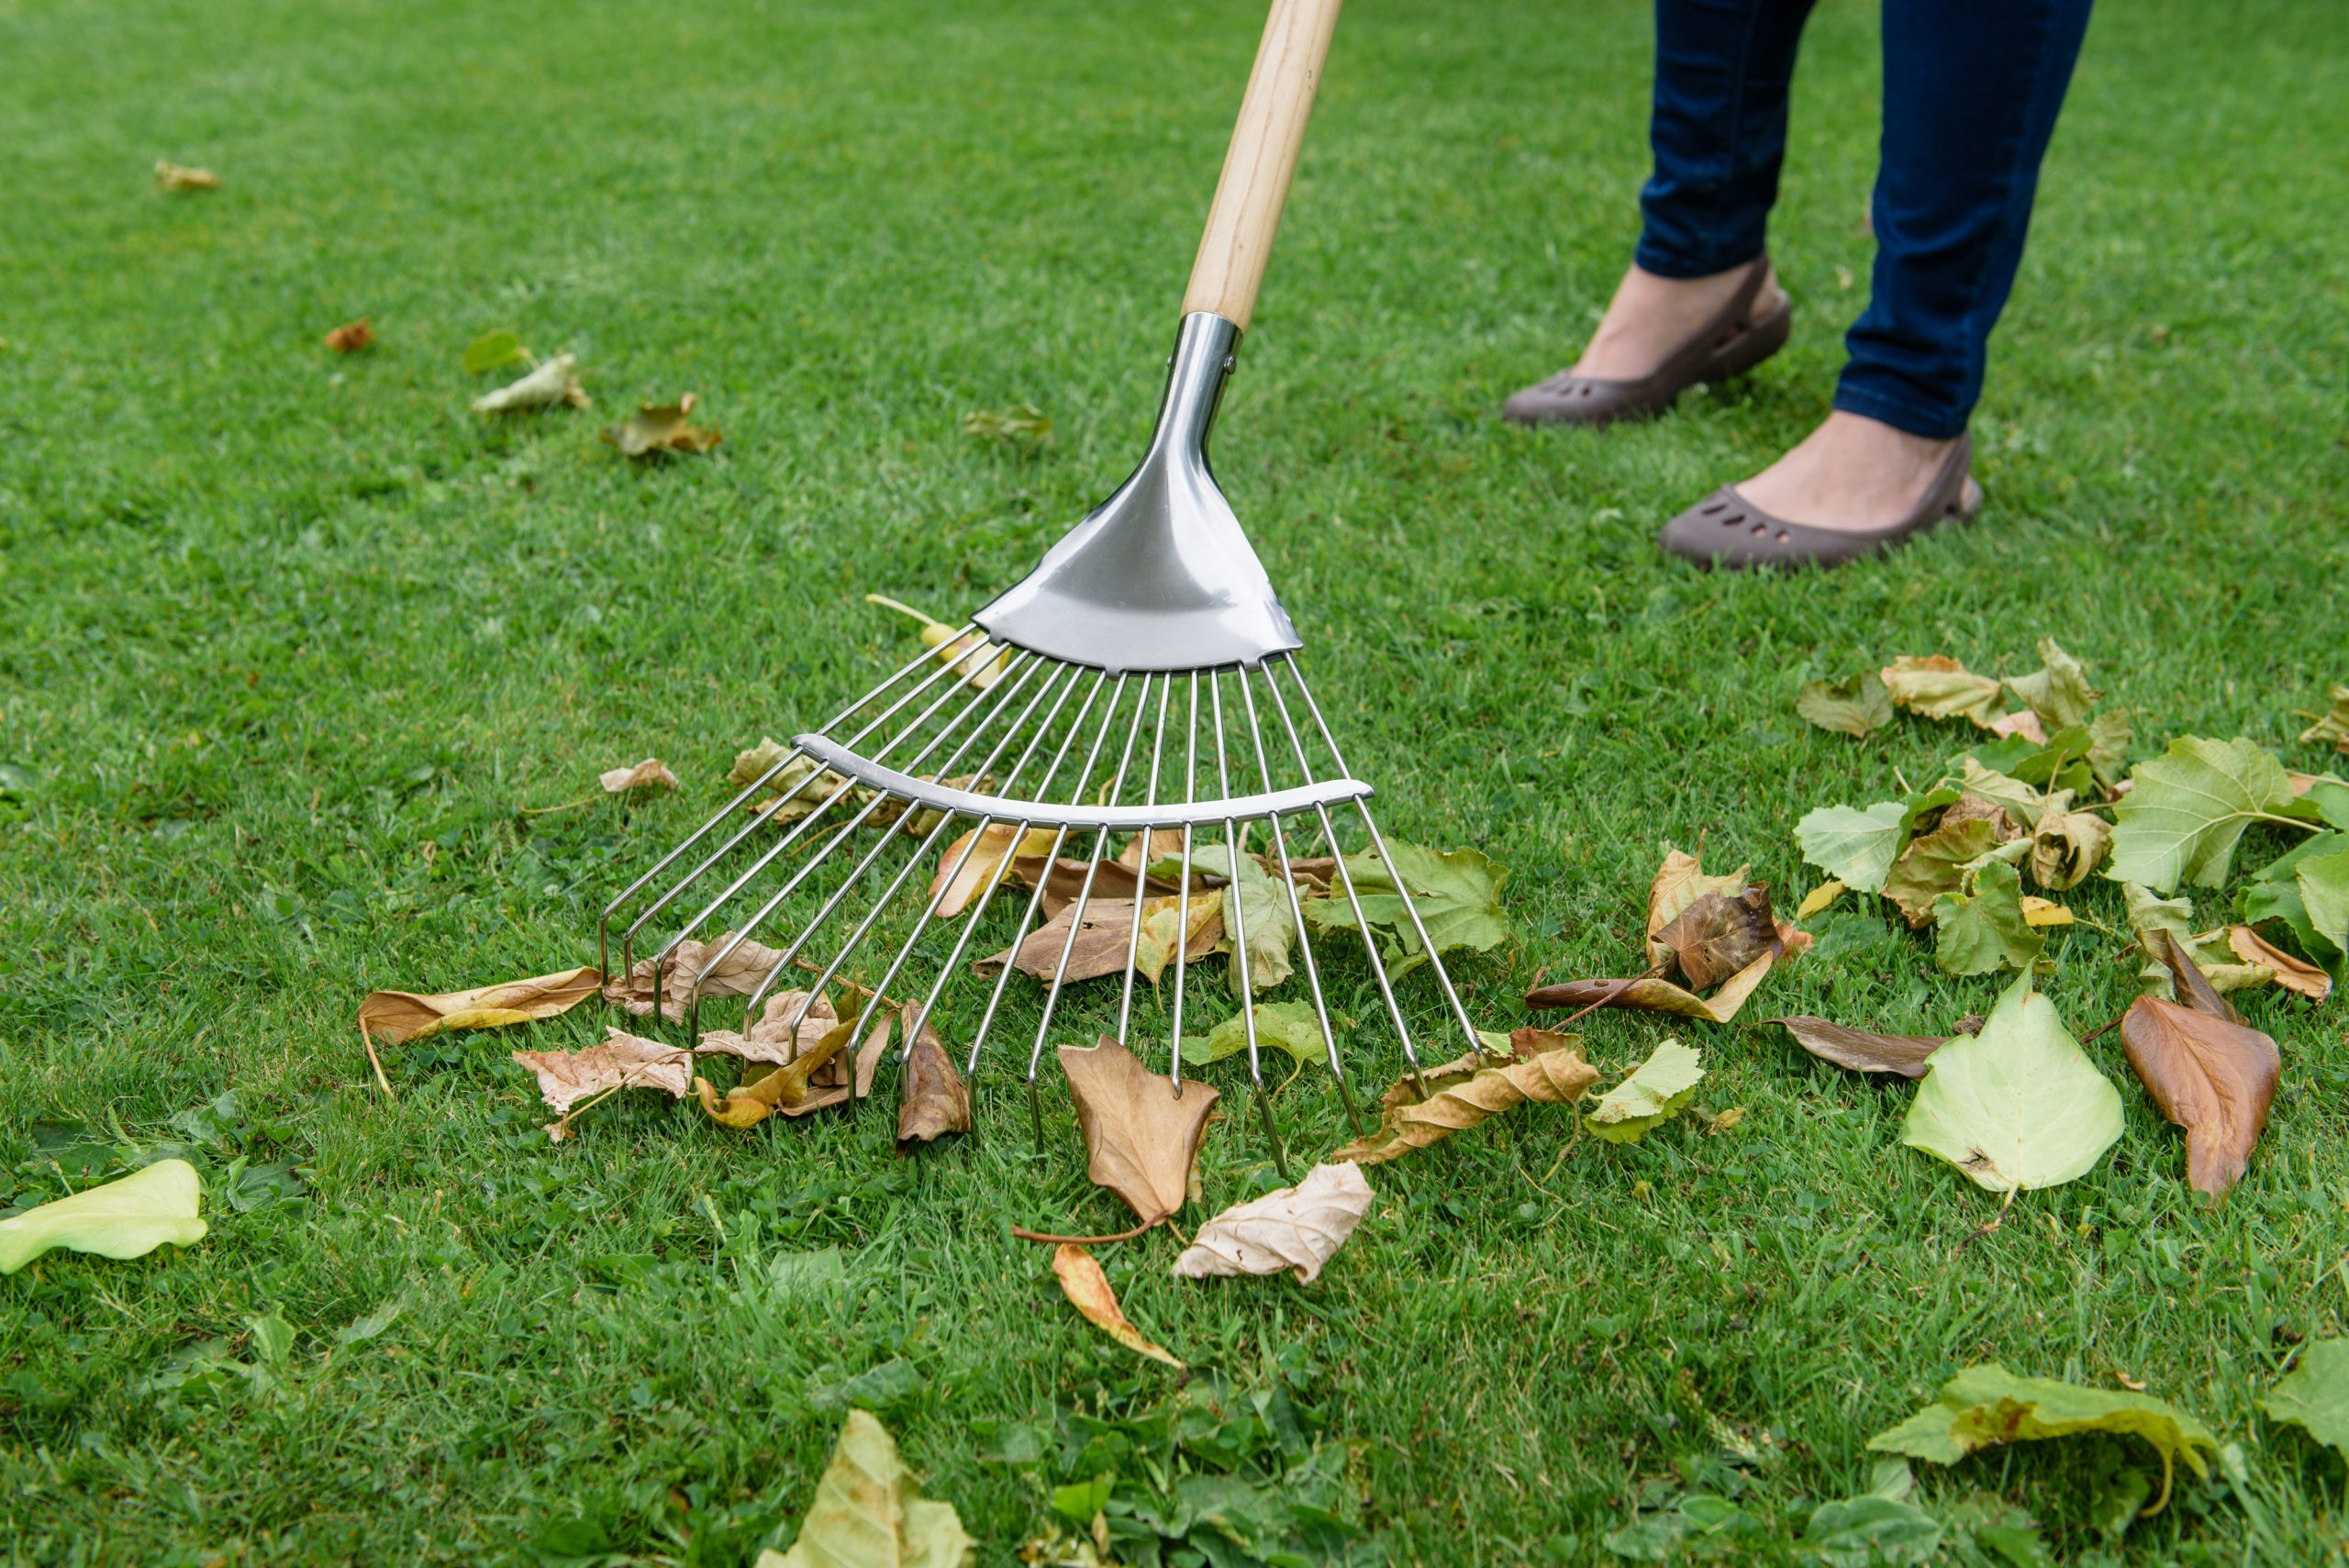 kent & stowe lawn rake in use - Jobs to do in Autumn